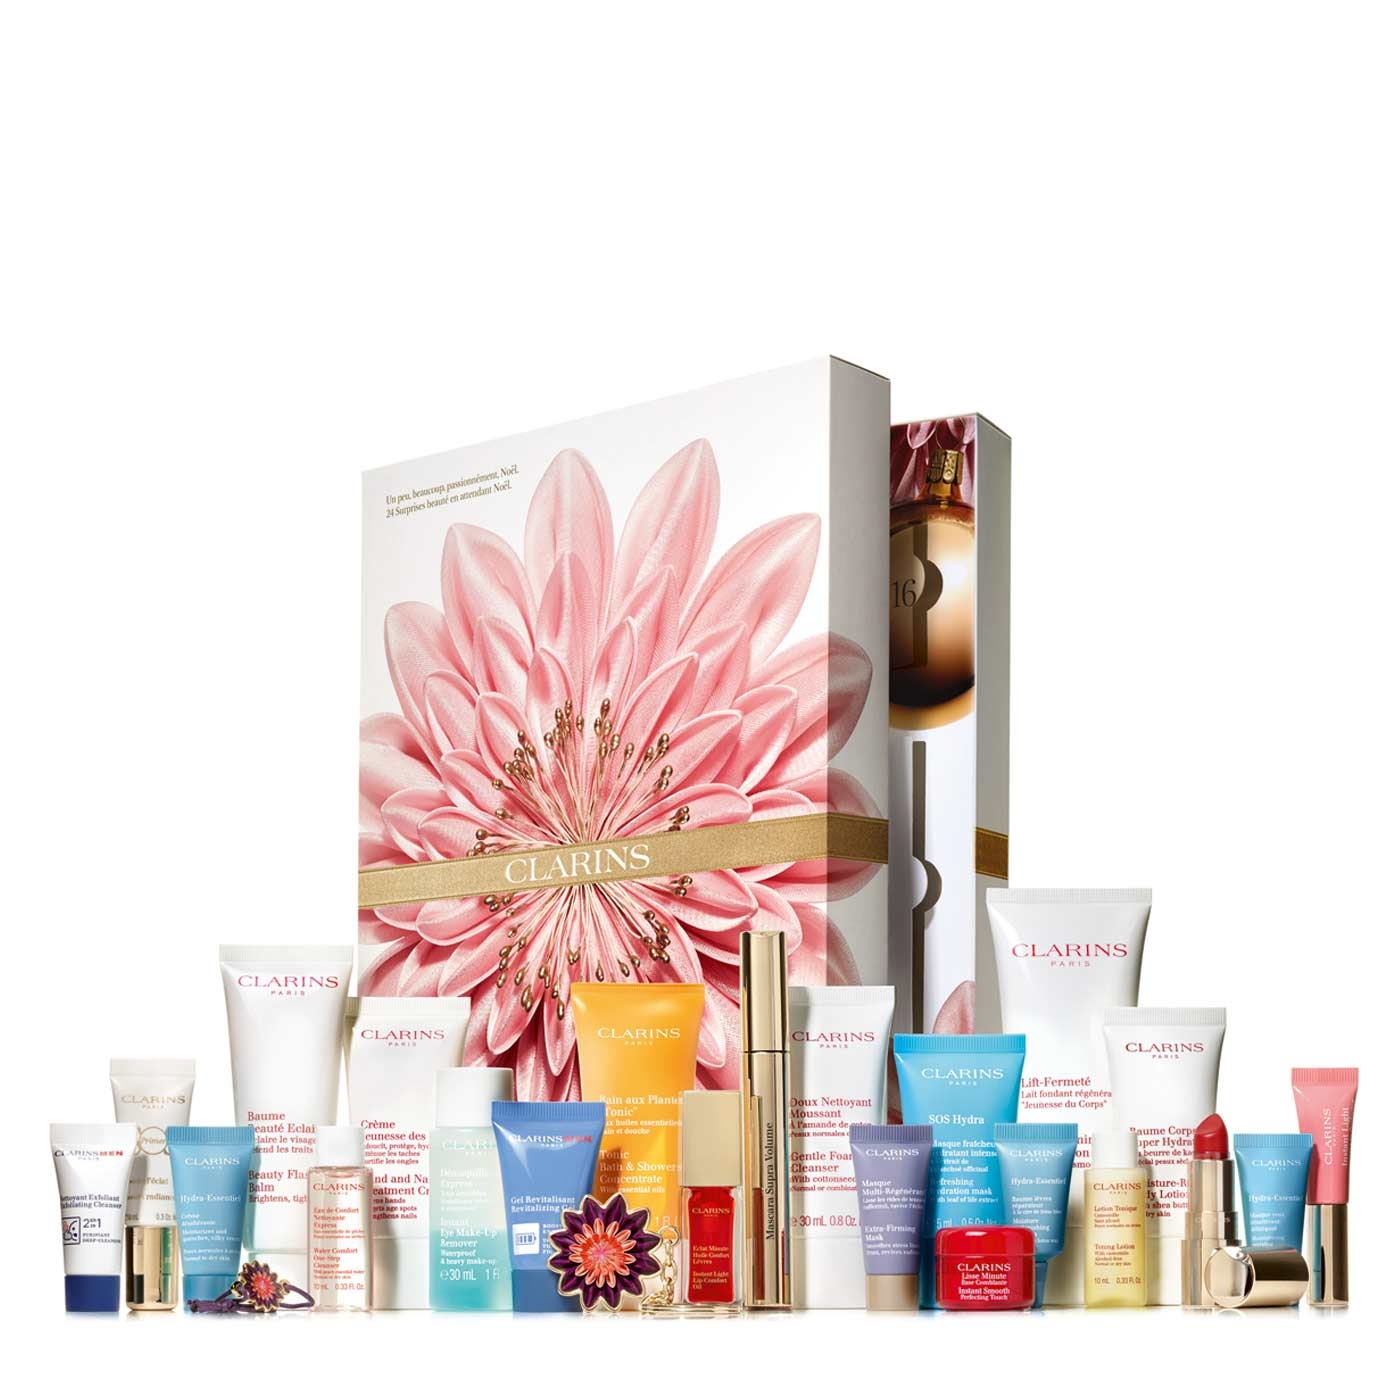 24 Days Of Clarins Advent Calendar